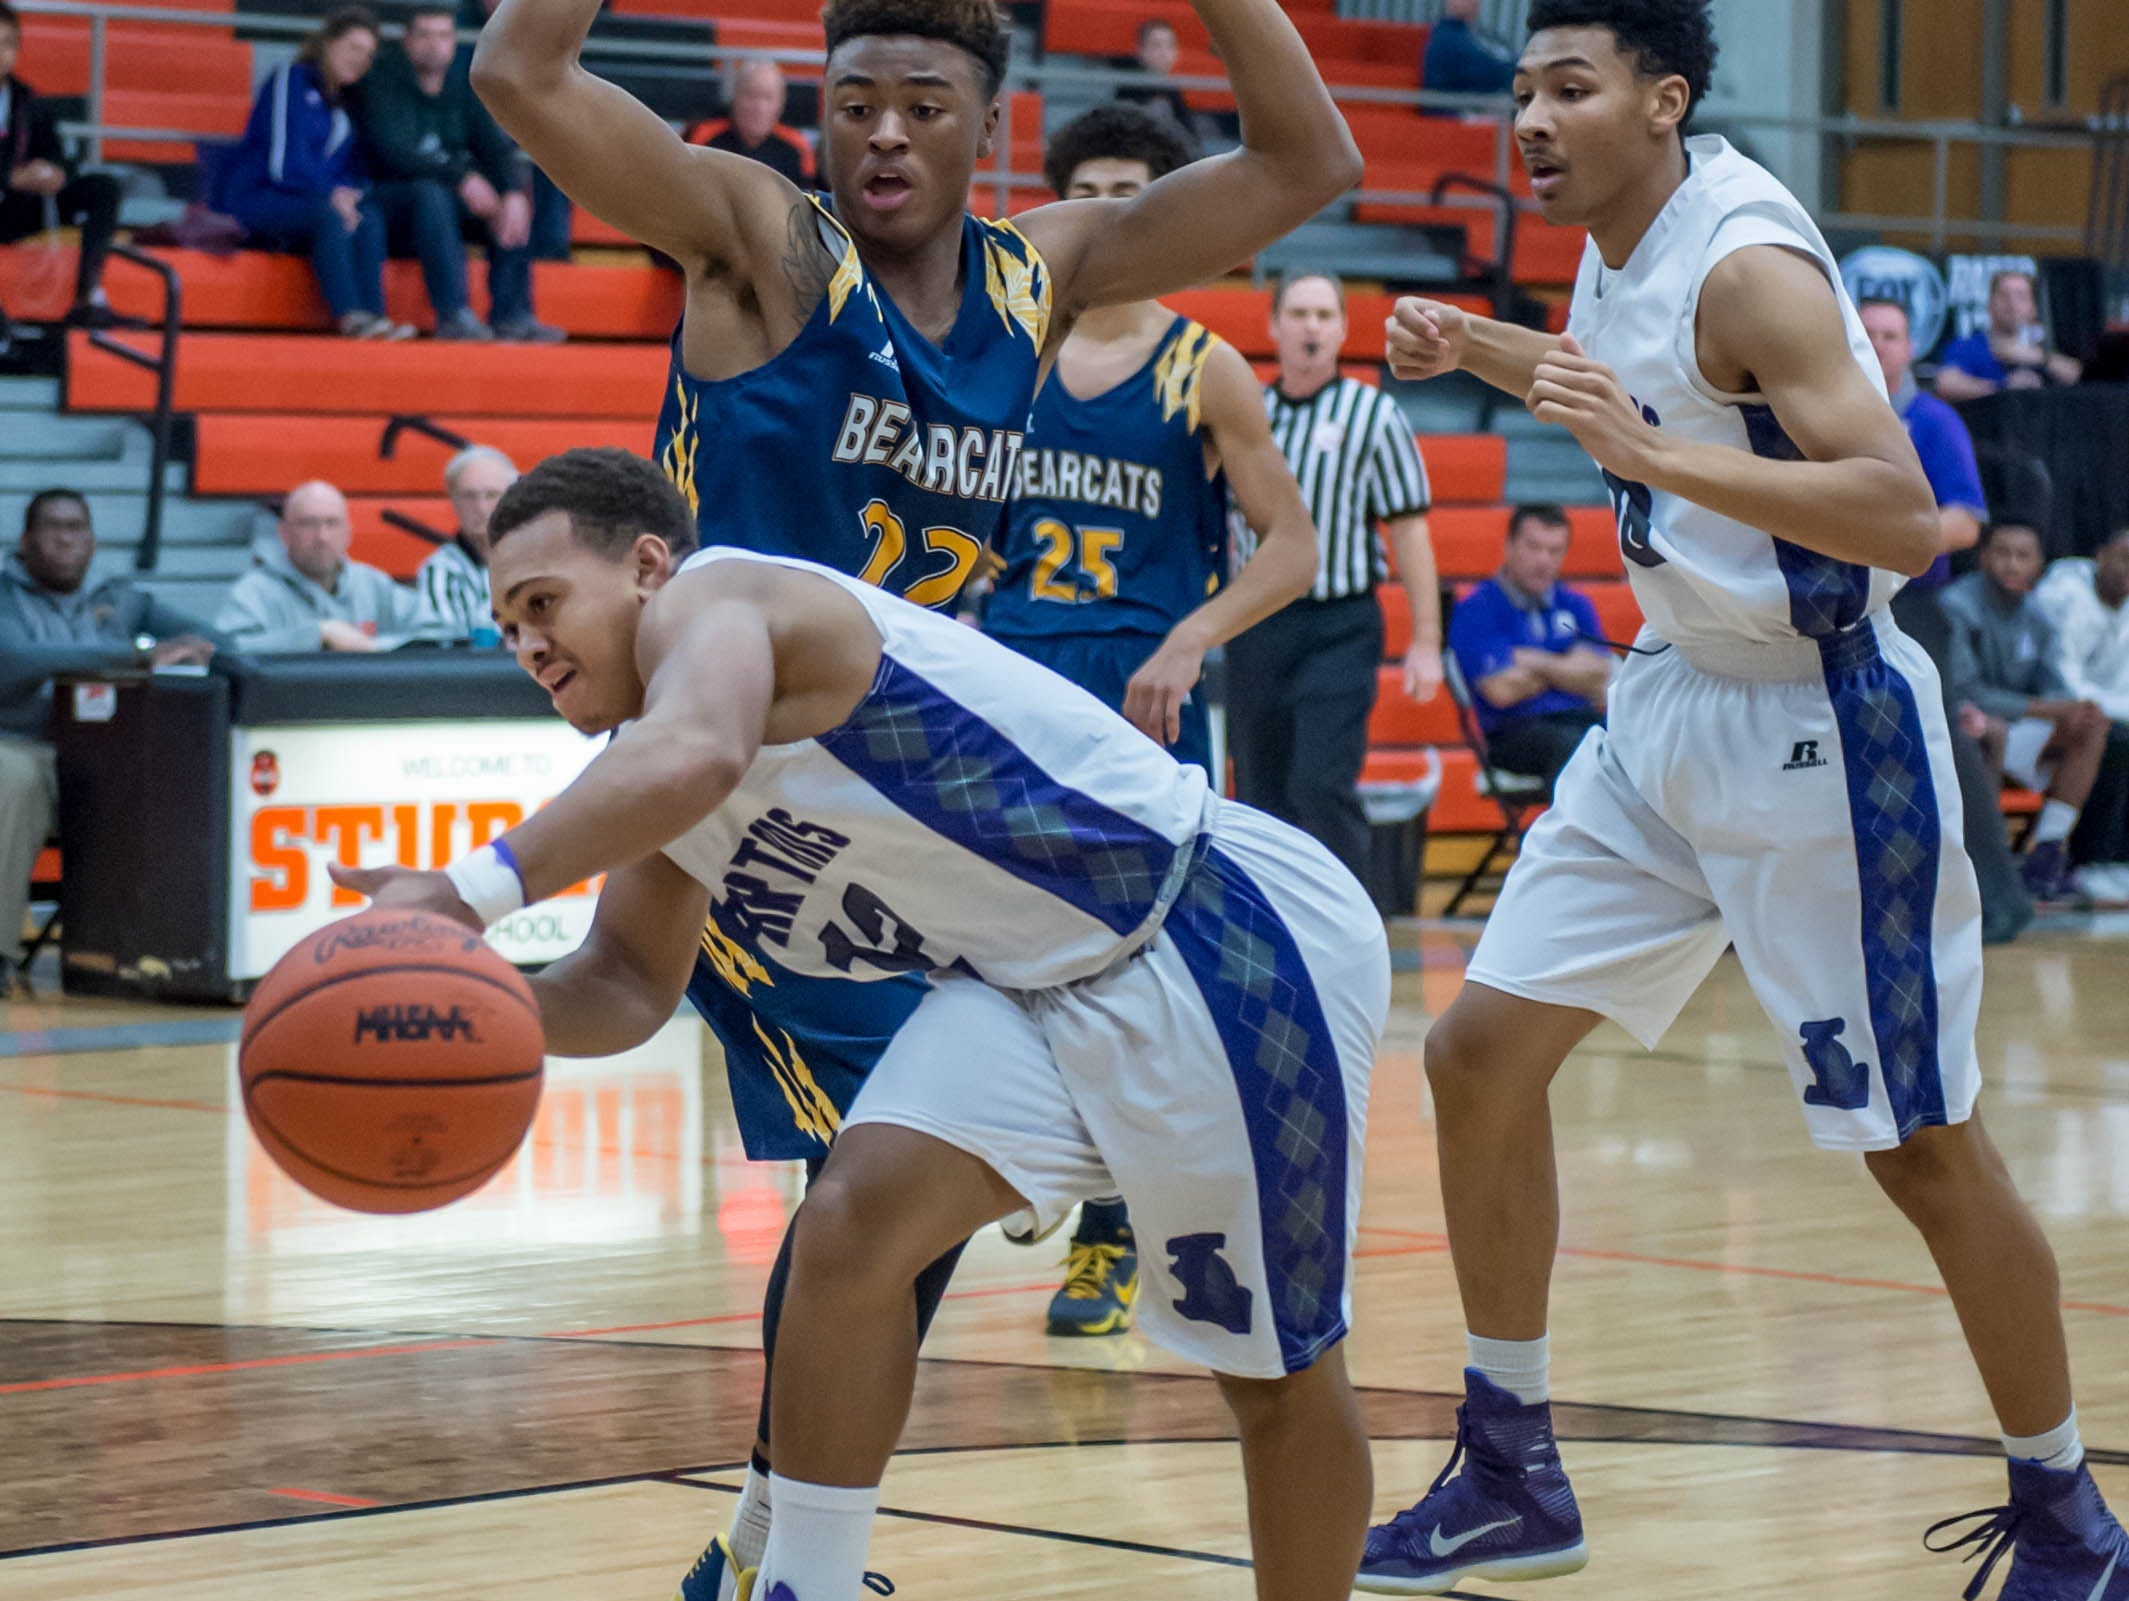 Lakeview's CJ Foster (12) gets a pass during game against Battle Creek Central Wednesday night.